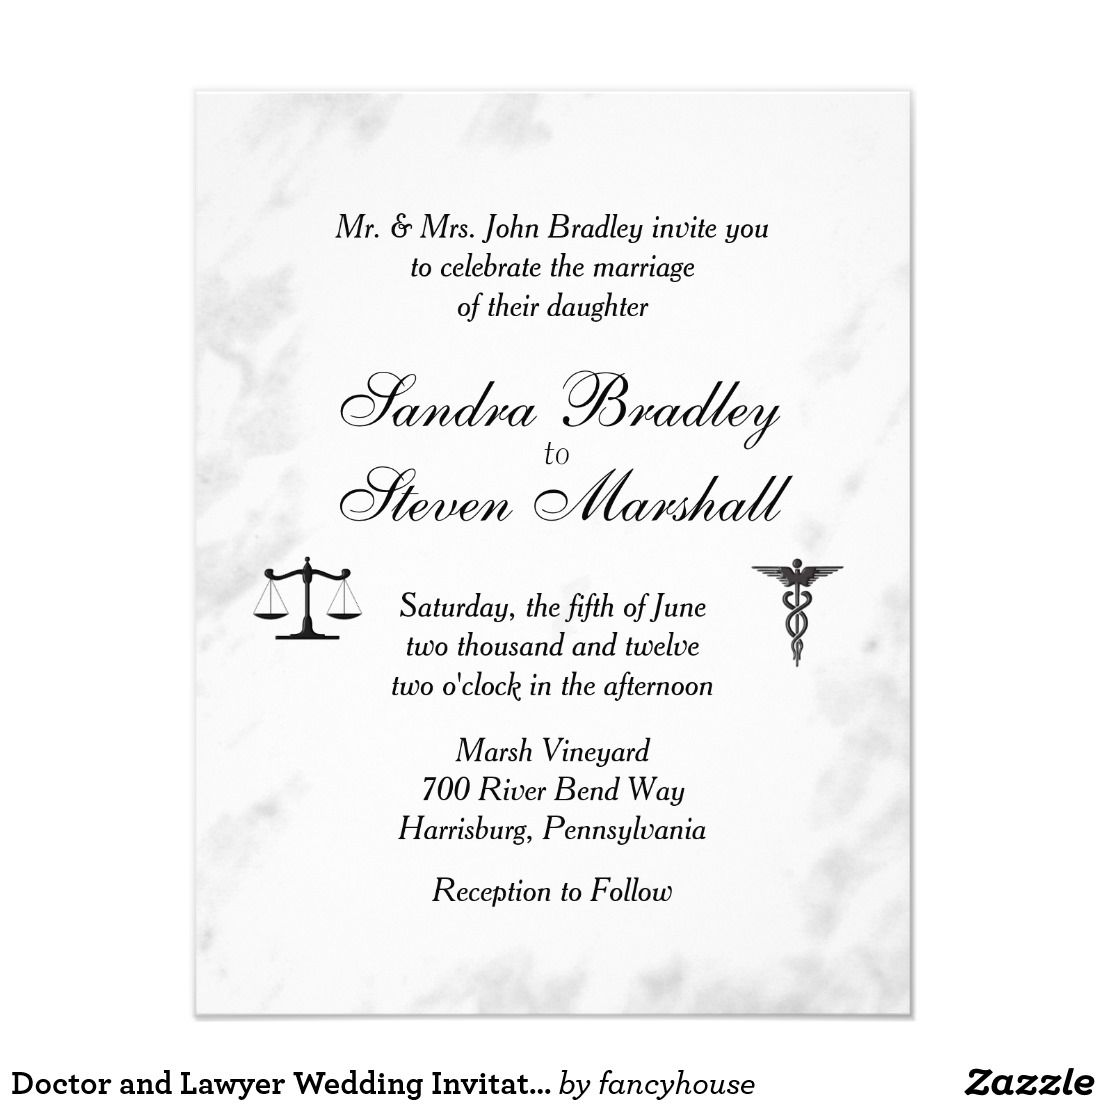 Doctor and Lawyer Wedding Invitation | Pinterest | Unique wedding ...